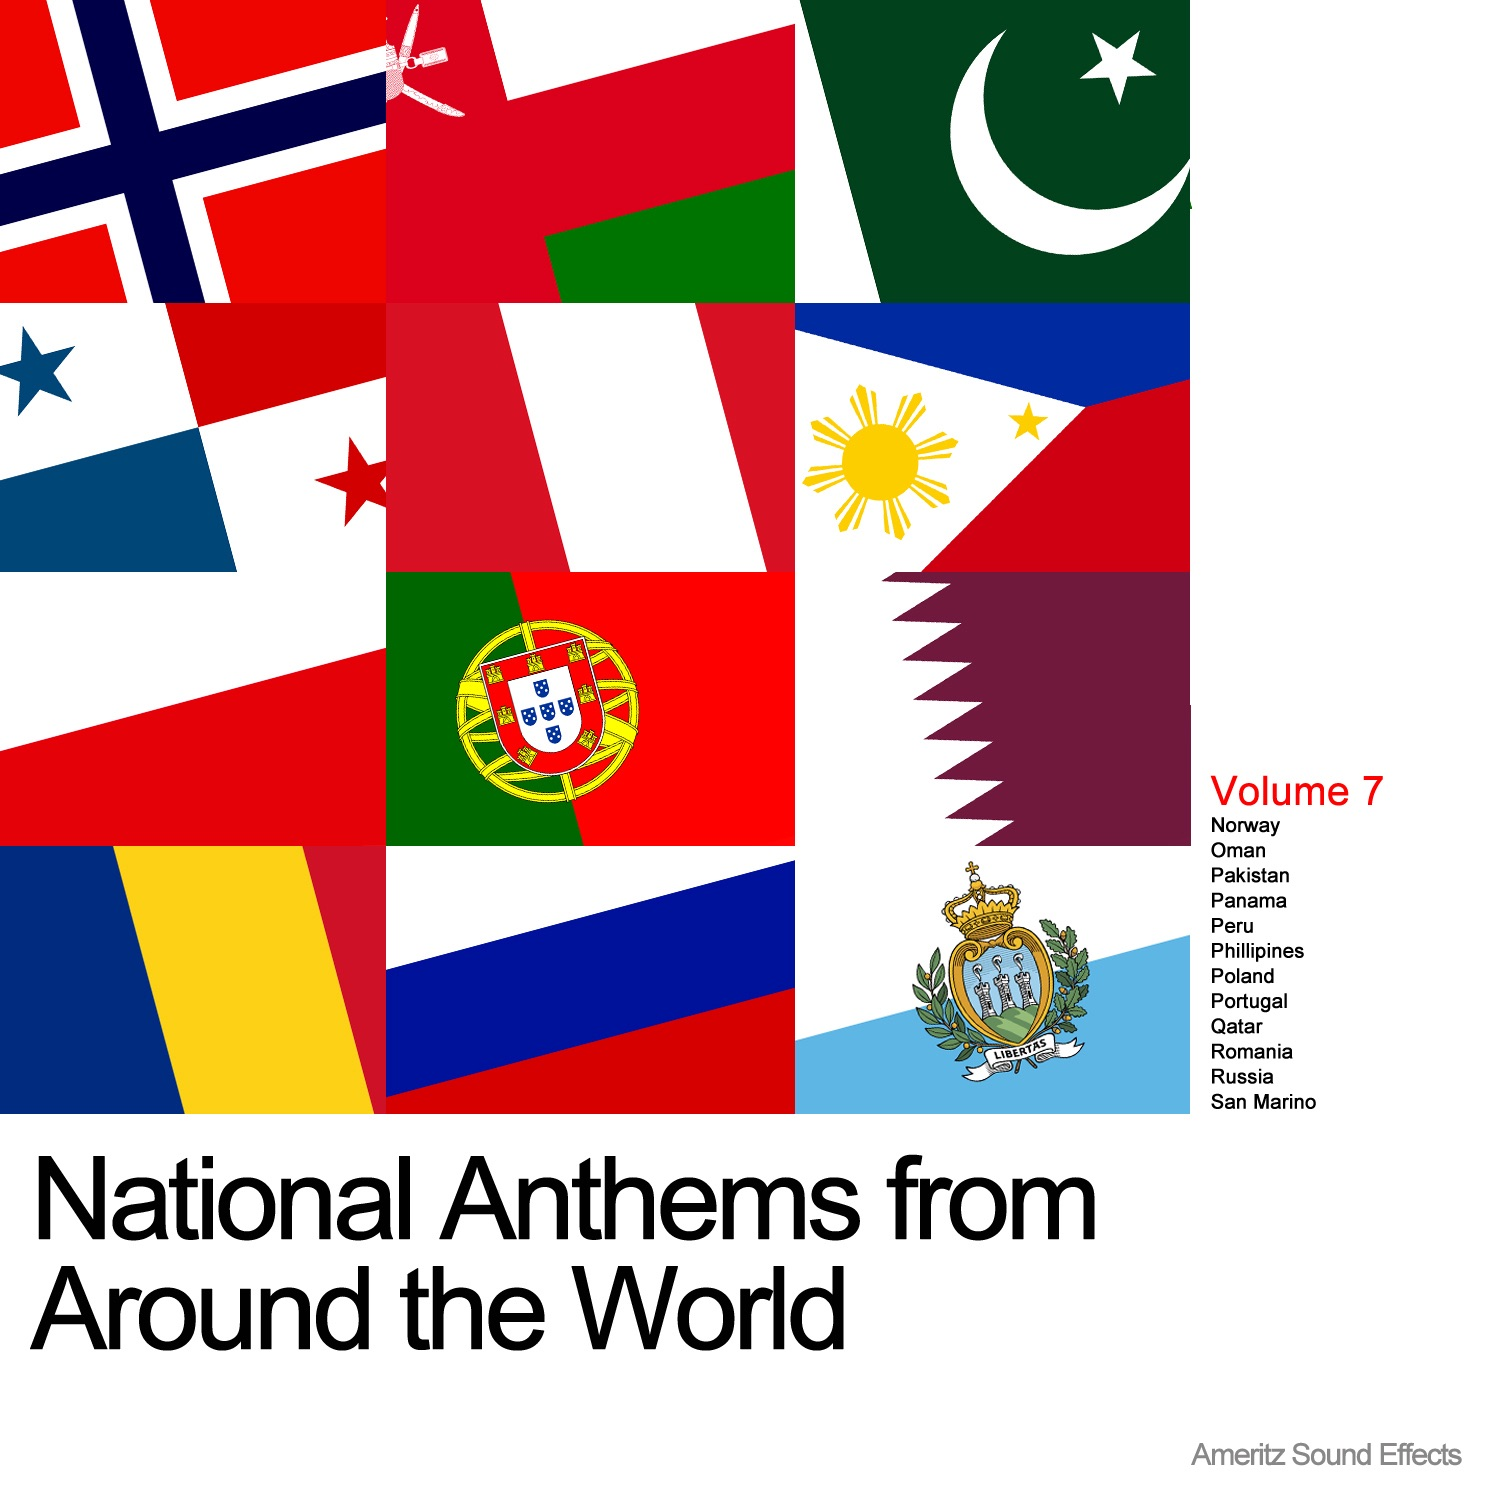 National Anthems from Around the World Vol. 7